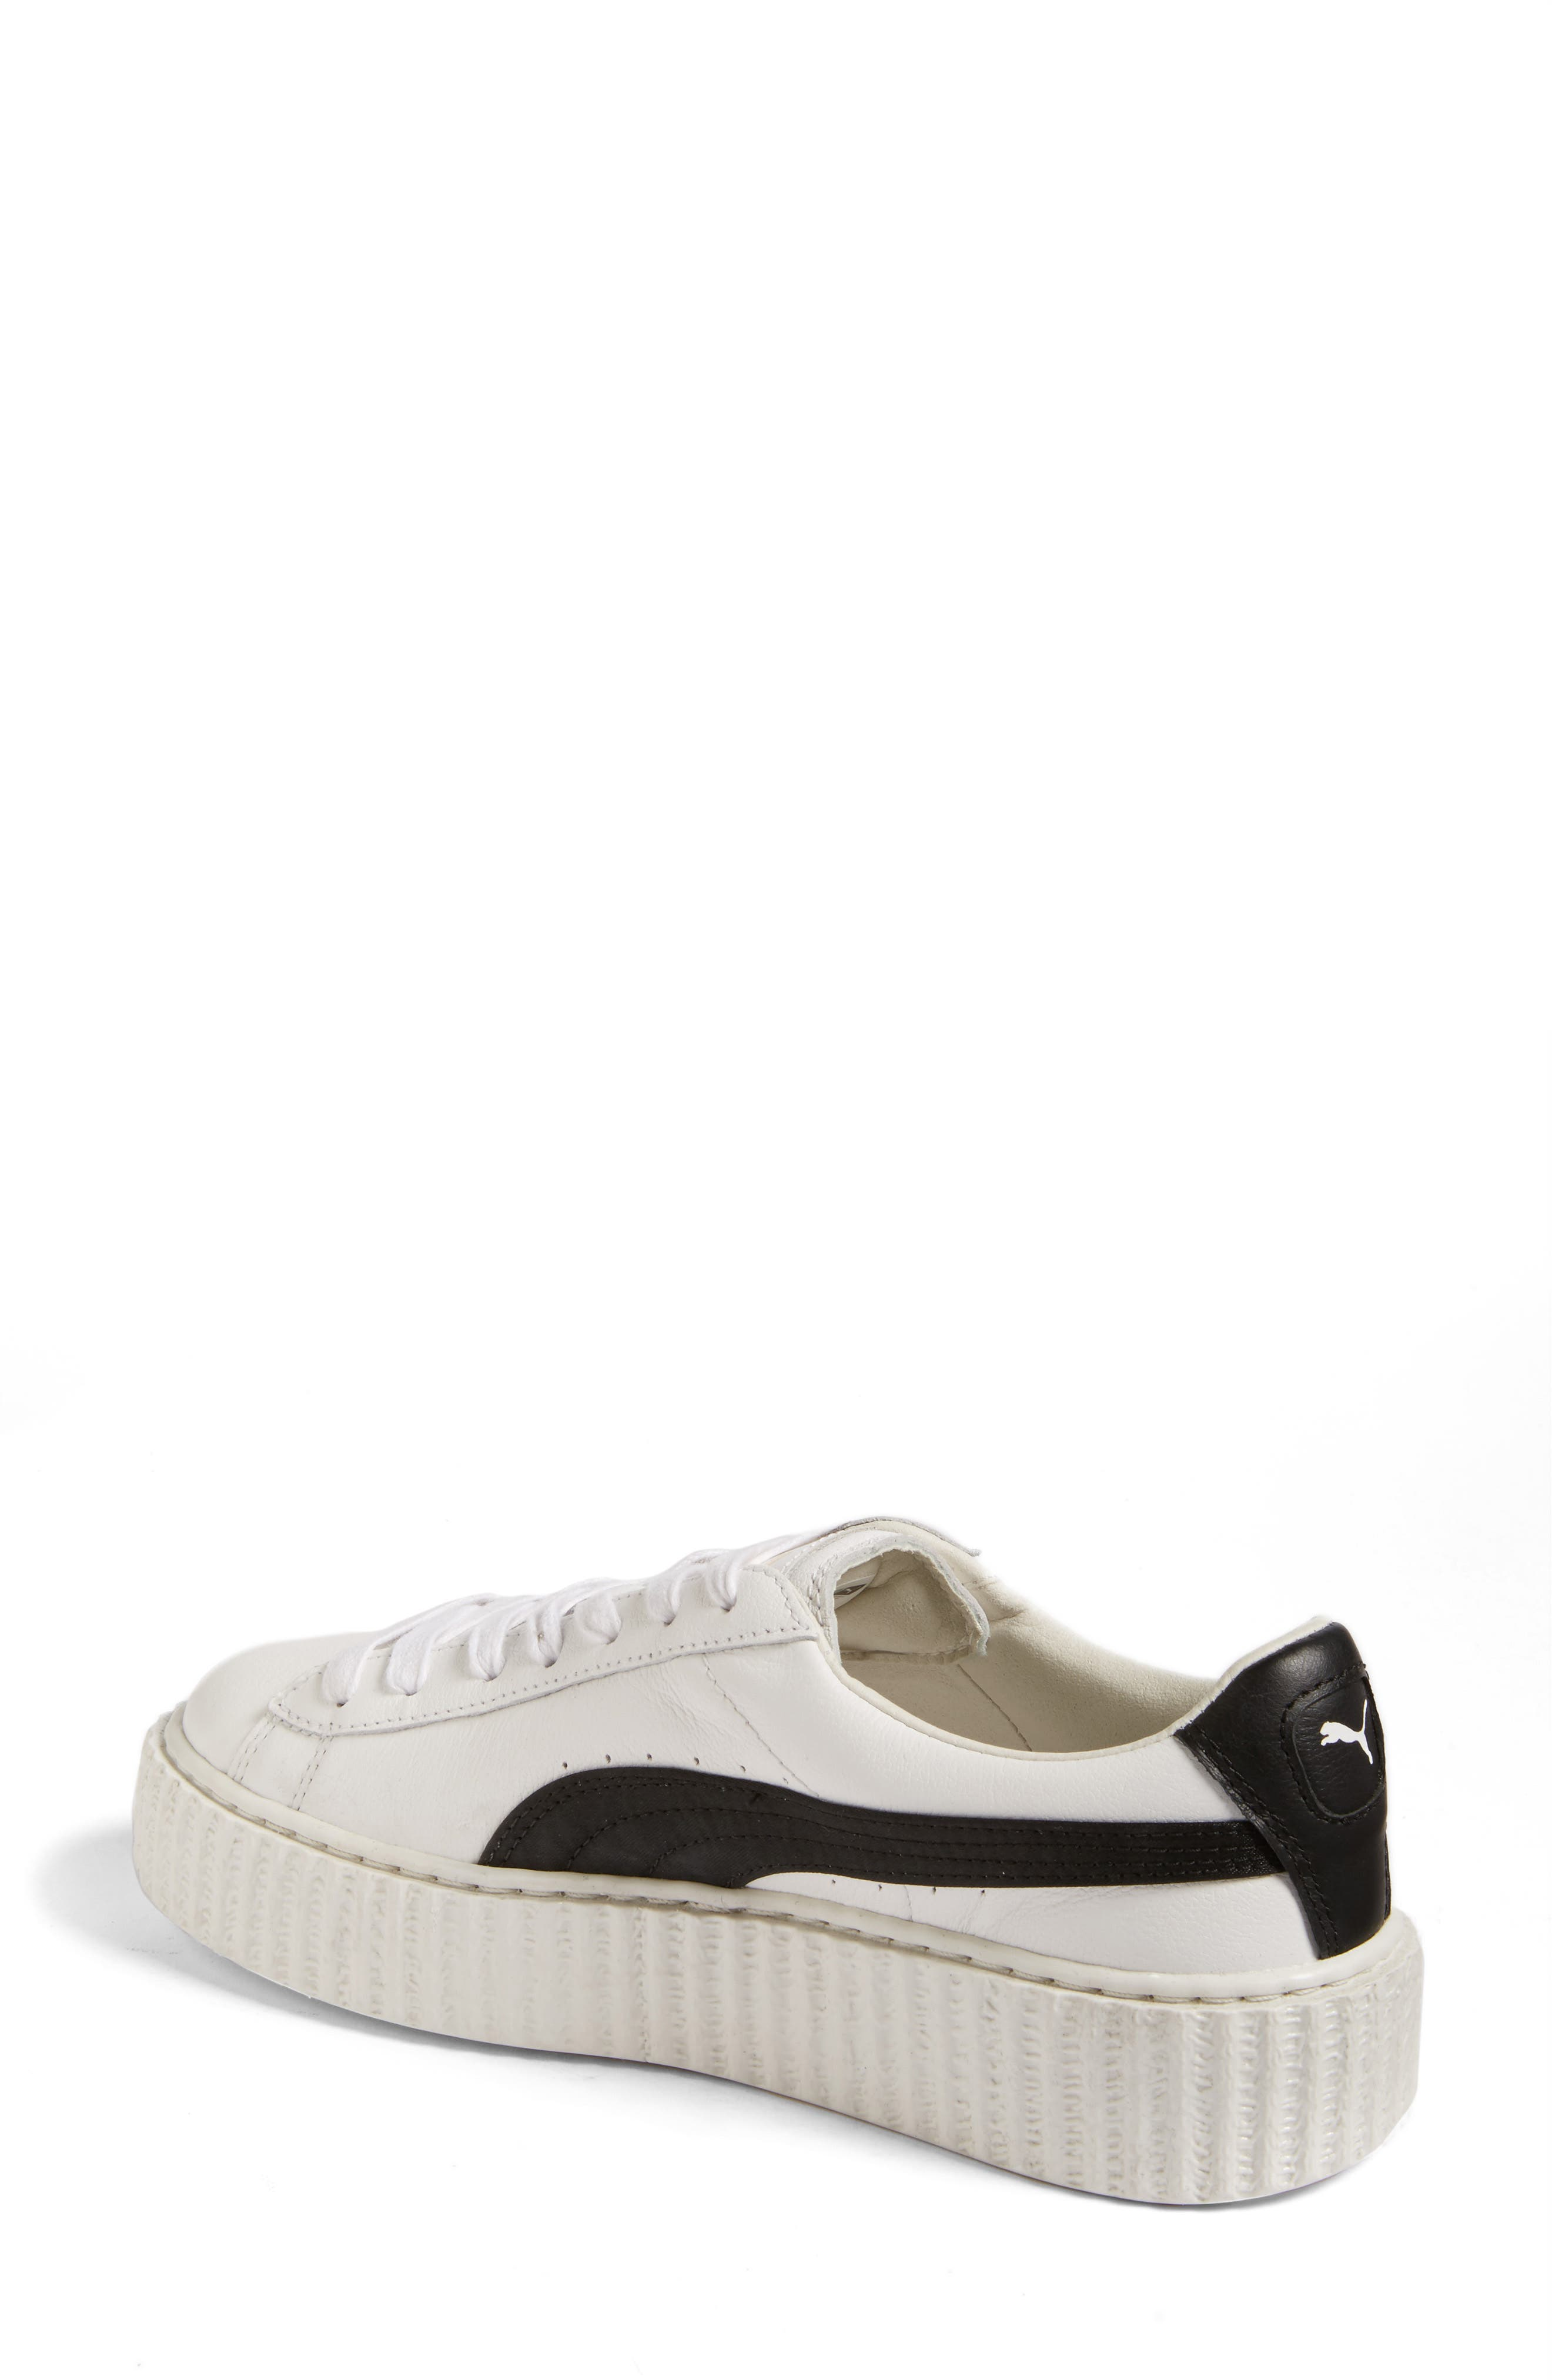 FENTY PUMA by Rihanna Creeper Sneaker,                             Alternate thumbnail 2, color,                             White Leather